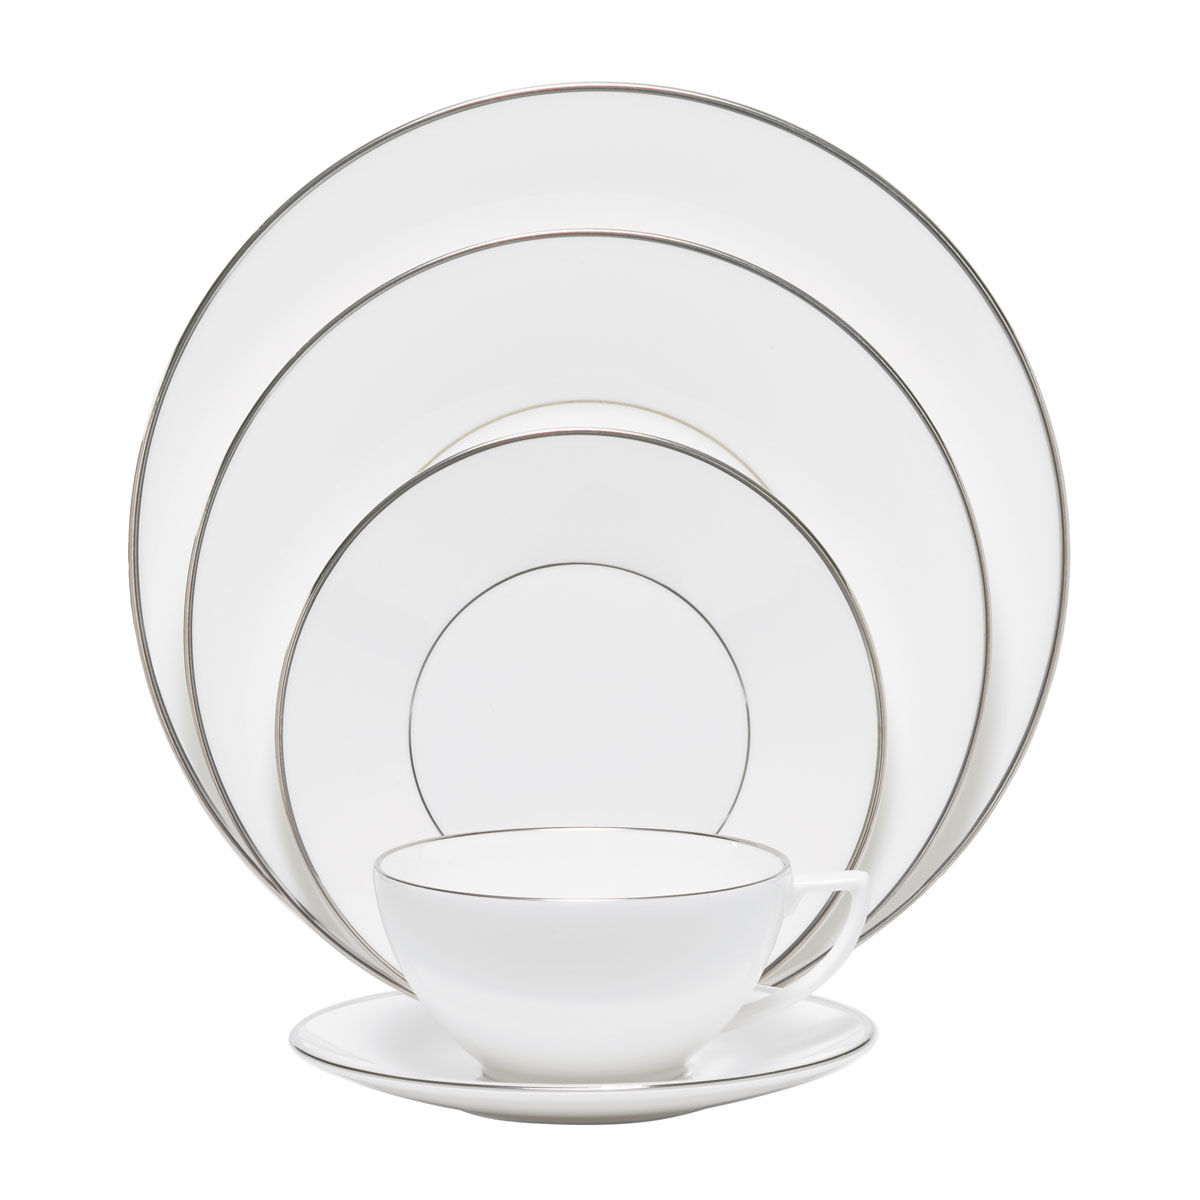 Wedgwood Jasper Conran Platinum 5 Piece Place Setting Lined